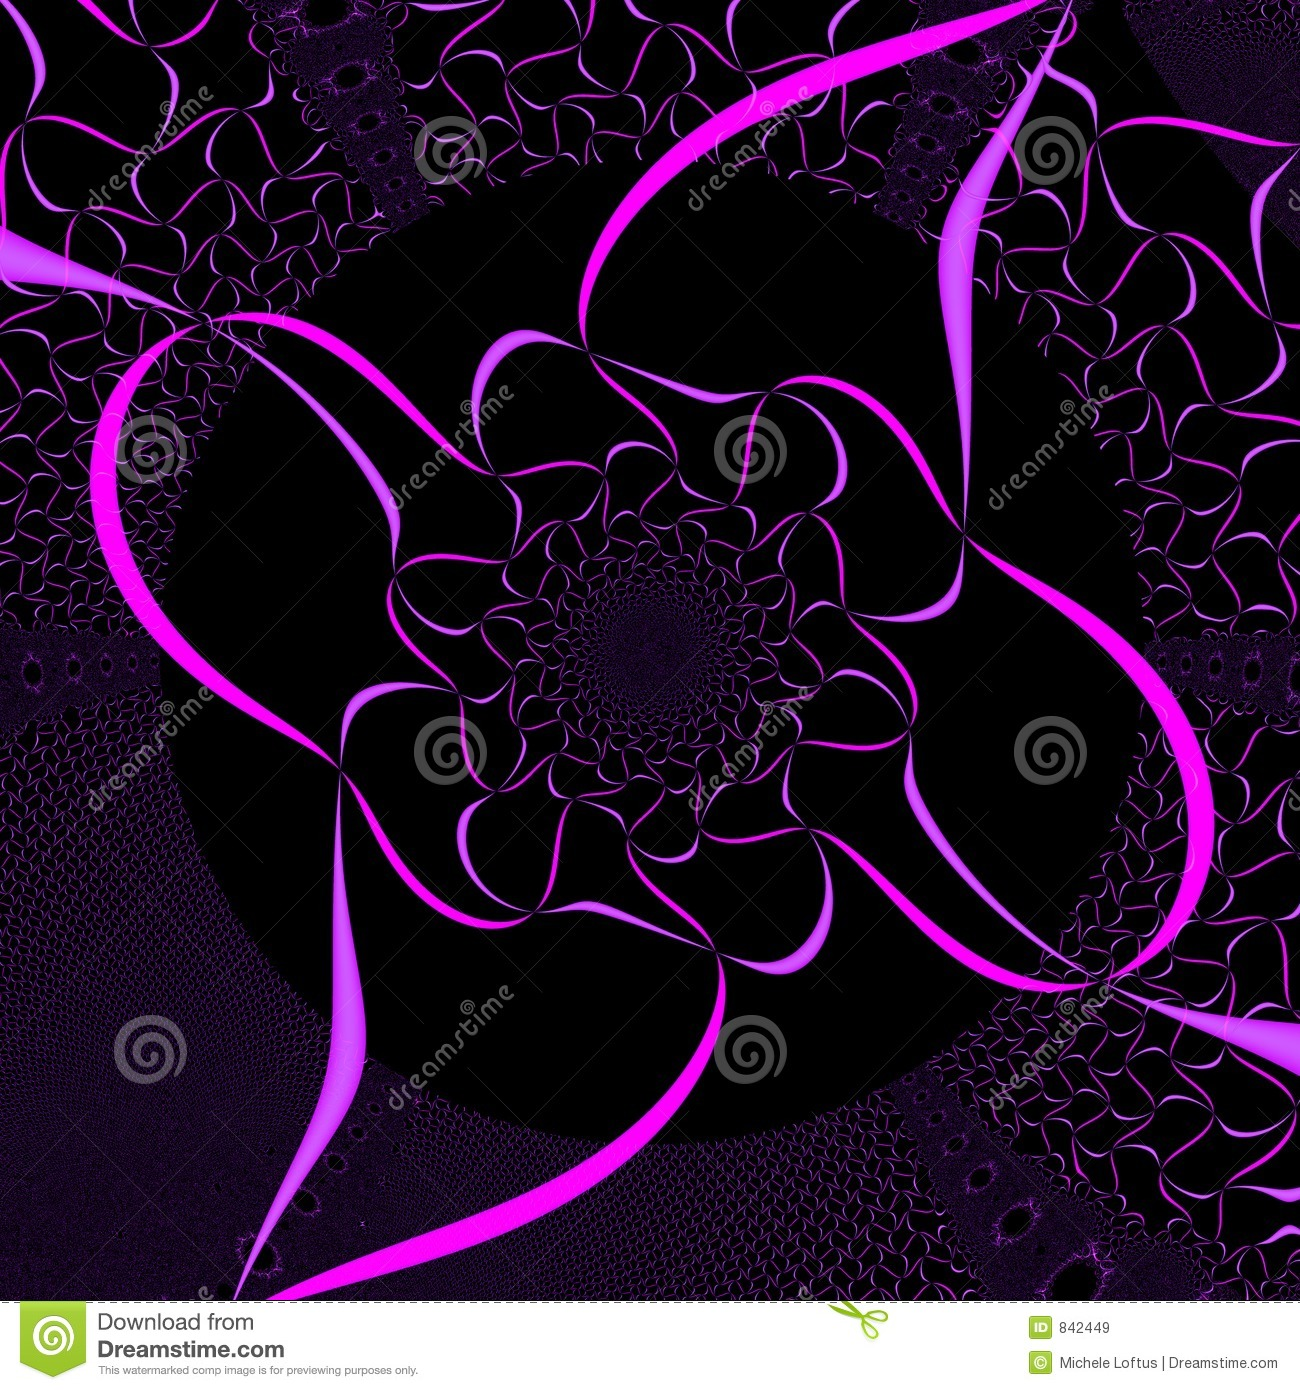 Breast Cancer 3d Wallpaper For Pc Pink And Black Background Royalty Free Stock Images